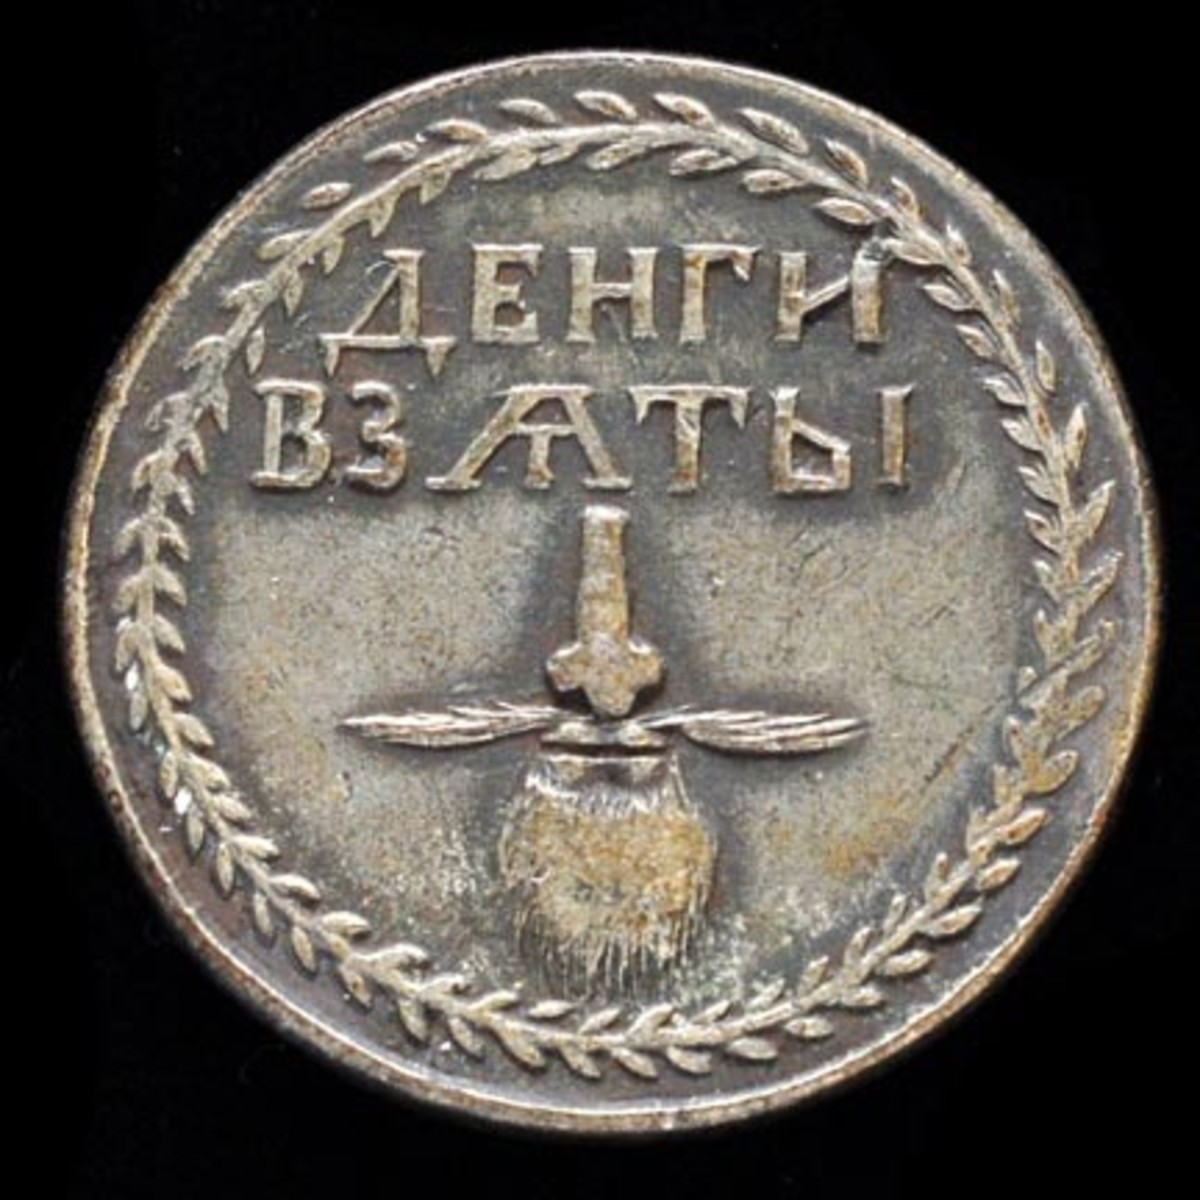 Russian beard tax token.